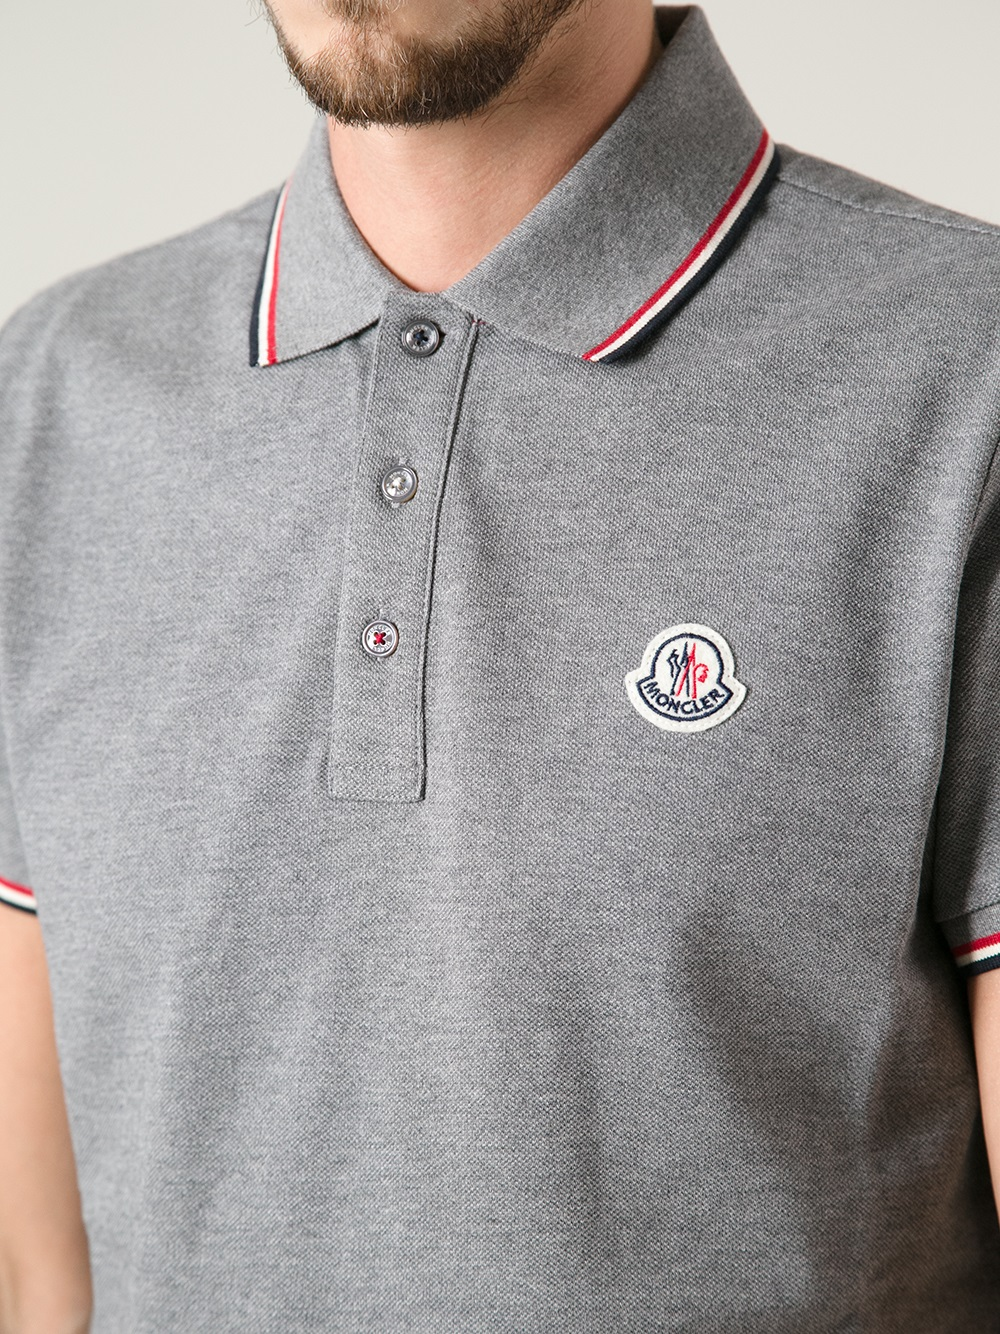 Discount 2018 short sleeve polo shirt - Grey Moncler Outlet Inexpensive Wiki Sale Online Manchester Great Sale Authentic Z84AfiR